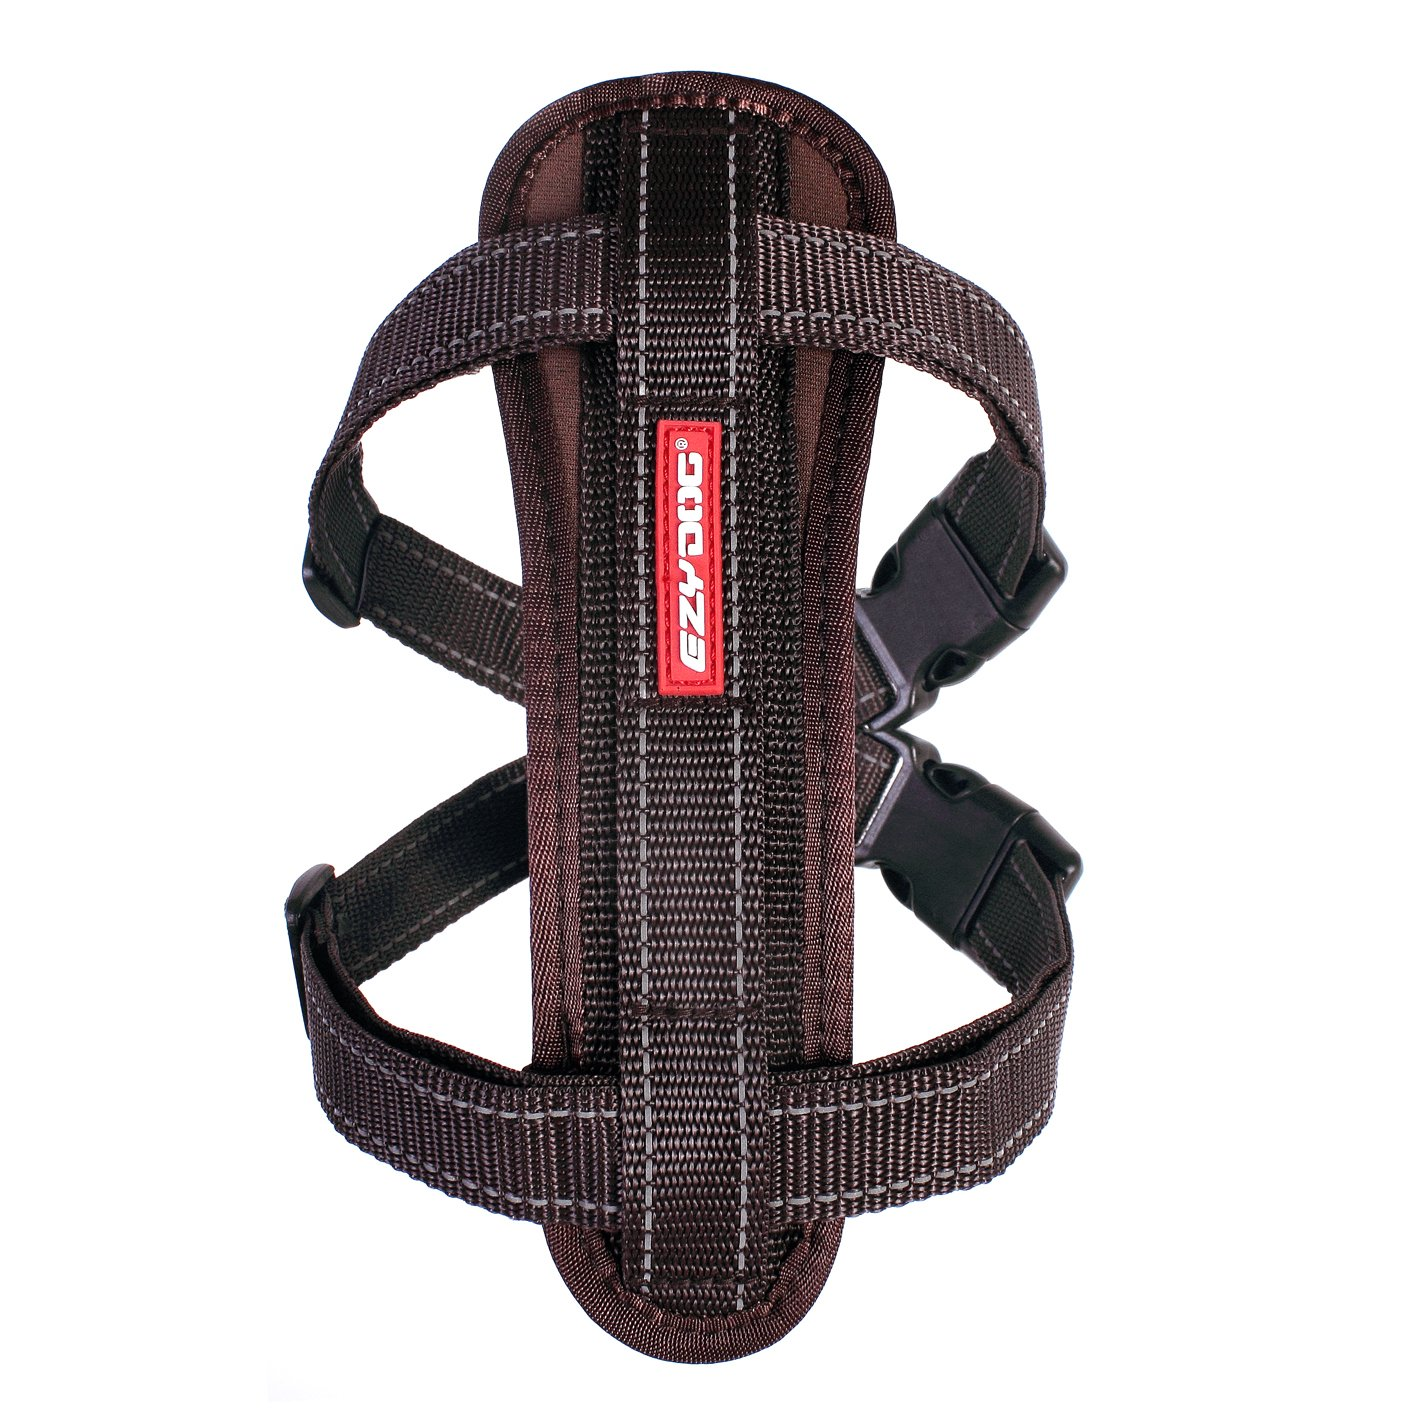 Best Custom Dog Harness Hard To Fit Dogs